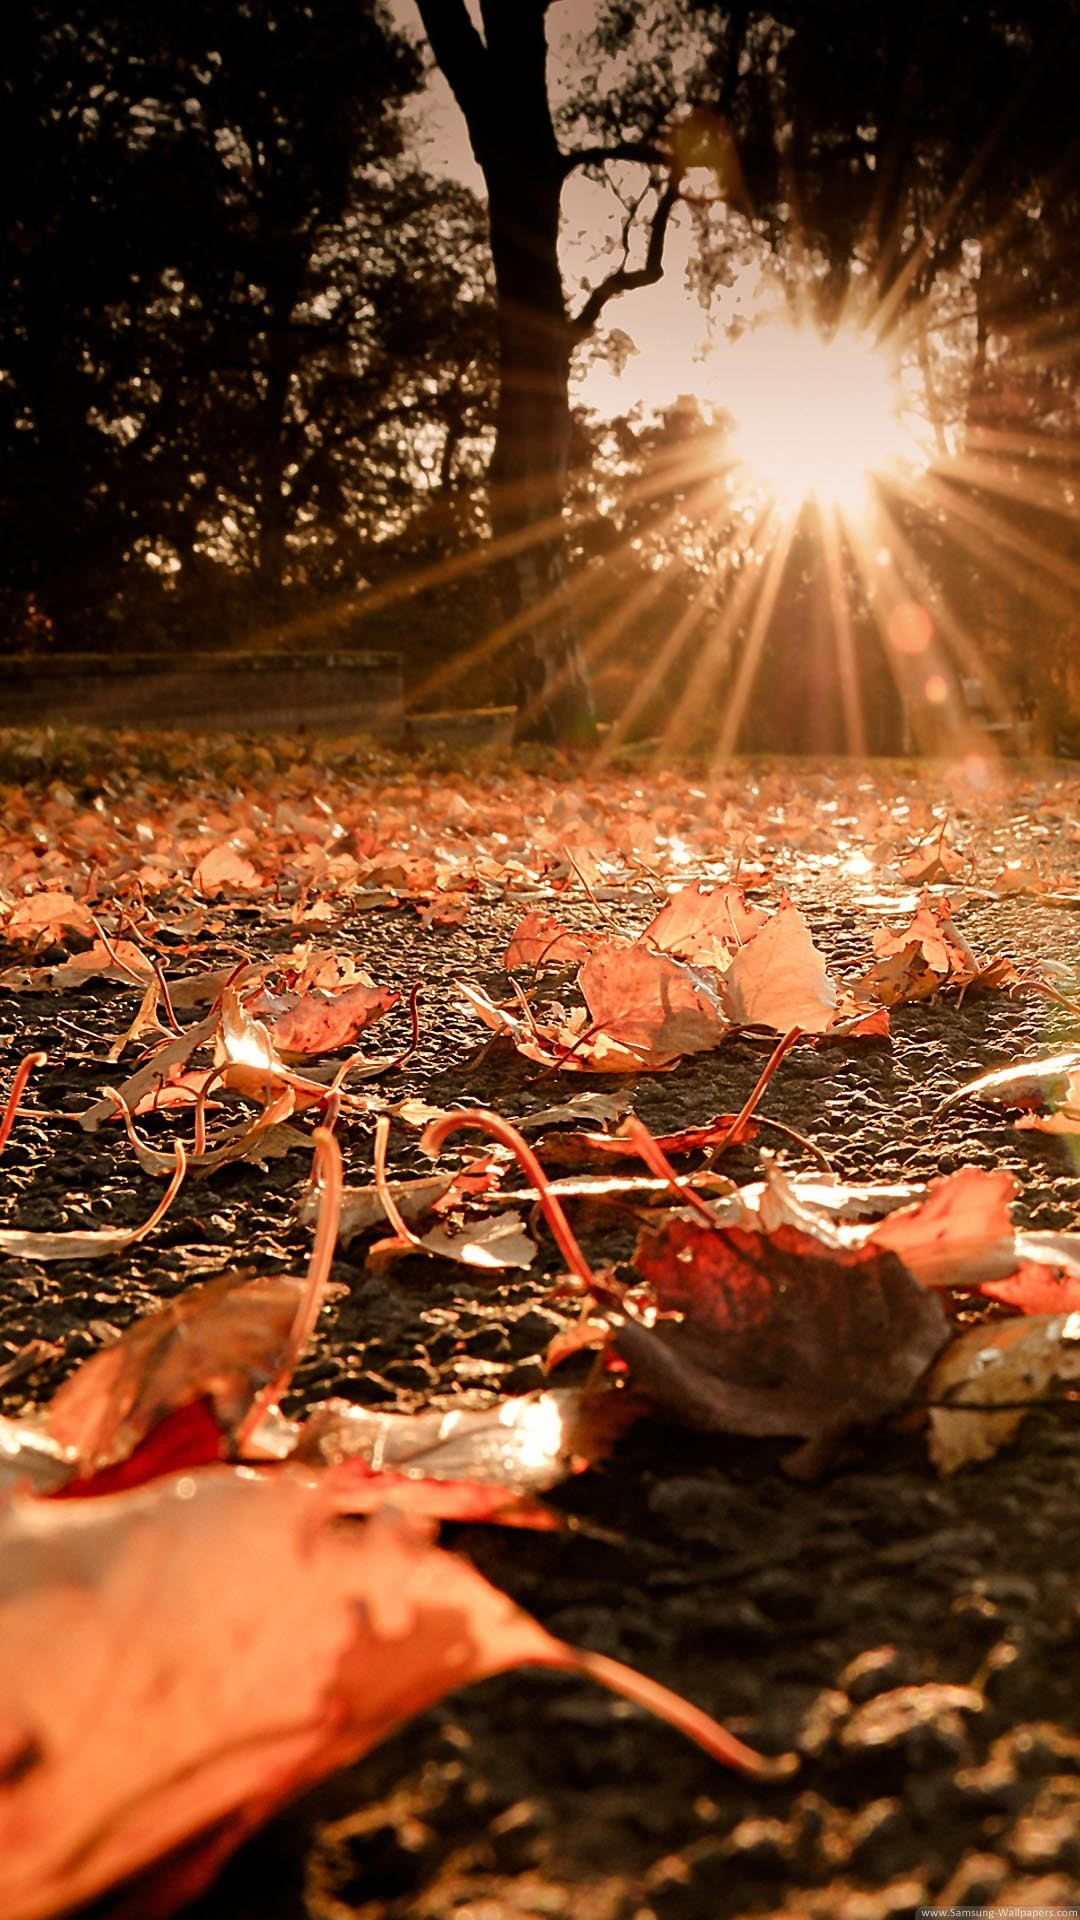 Nature iPhone 6 Plus Wallpapers – Autumn Leaves On The Ground Sunset iPhone  6 Plus HD